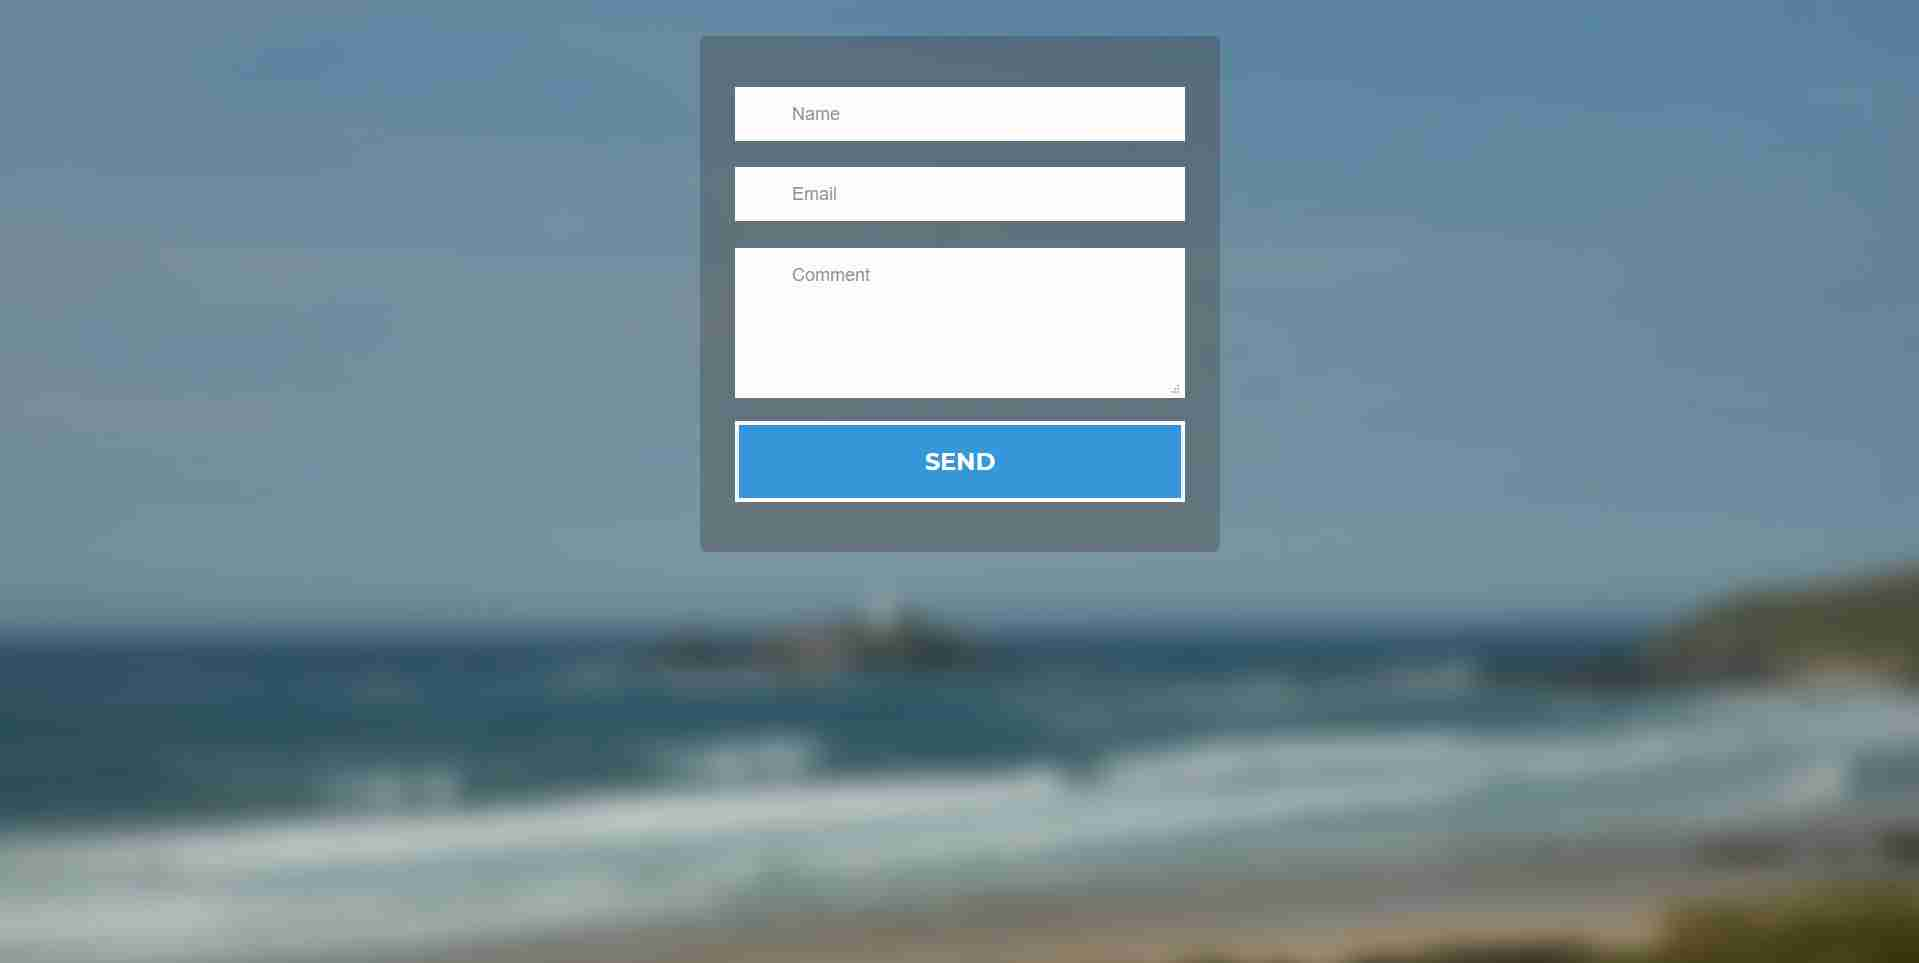 Flat Responsive Form using CSS3 & HTML5